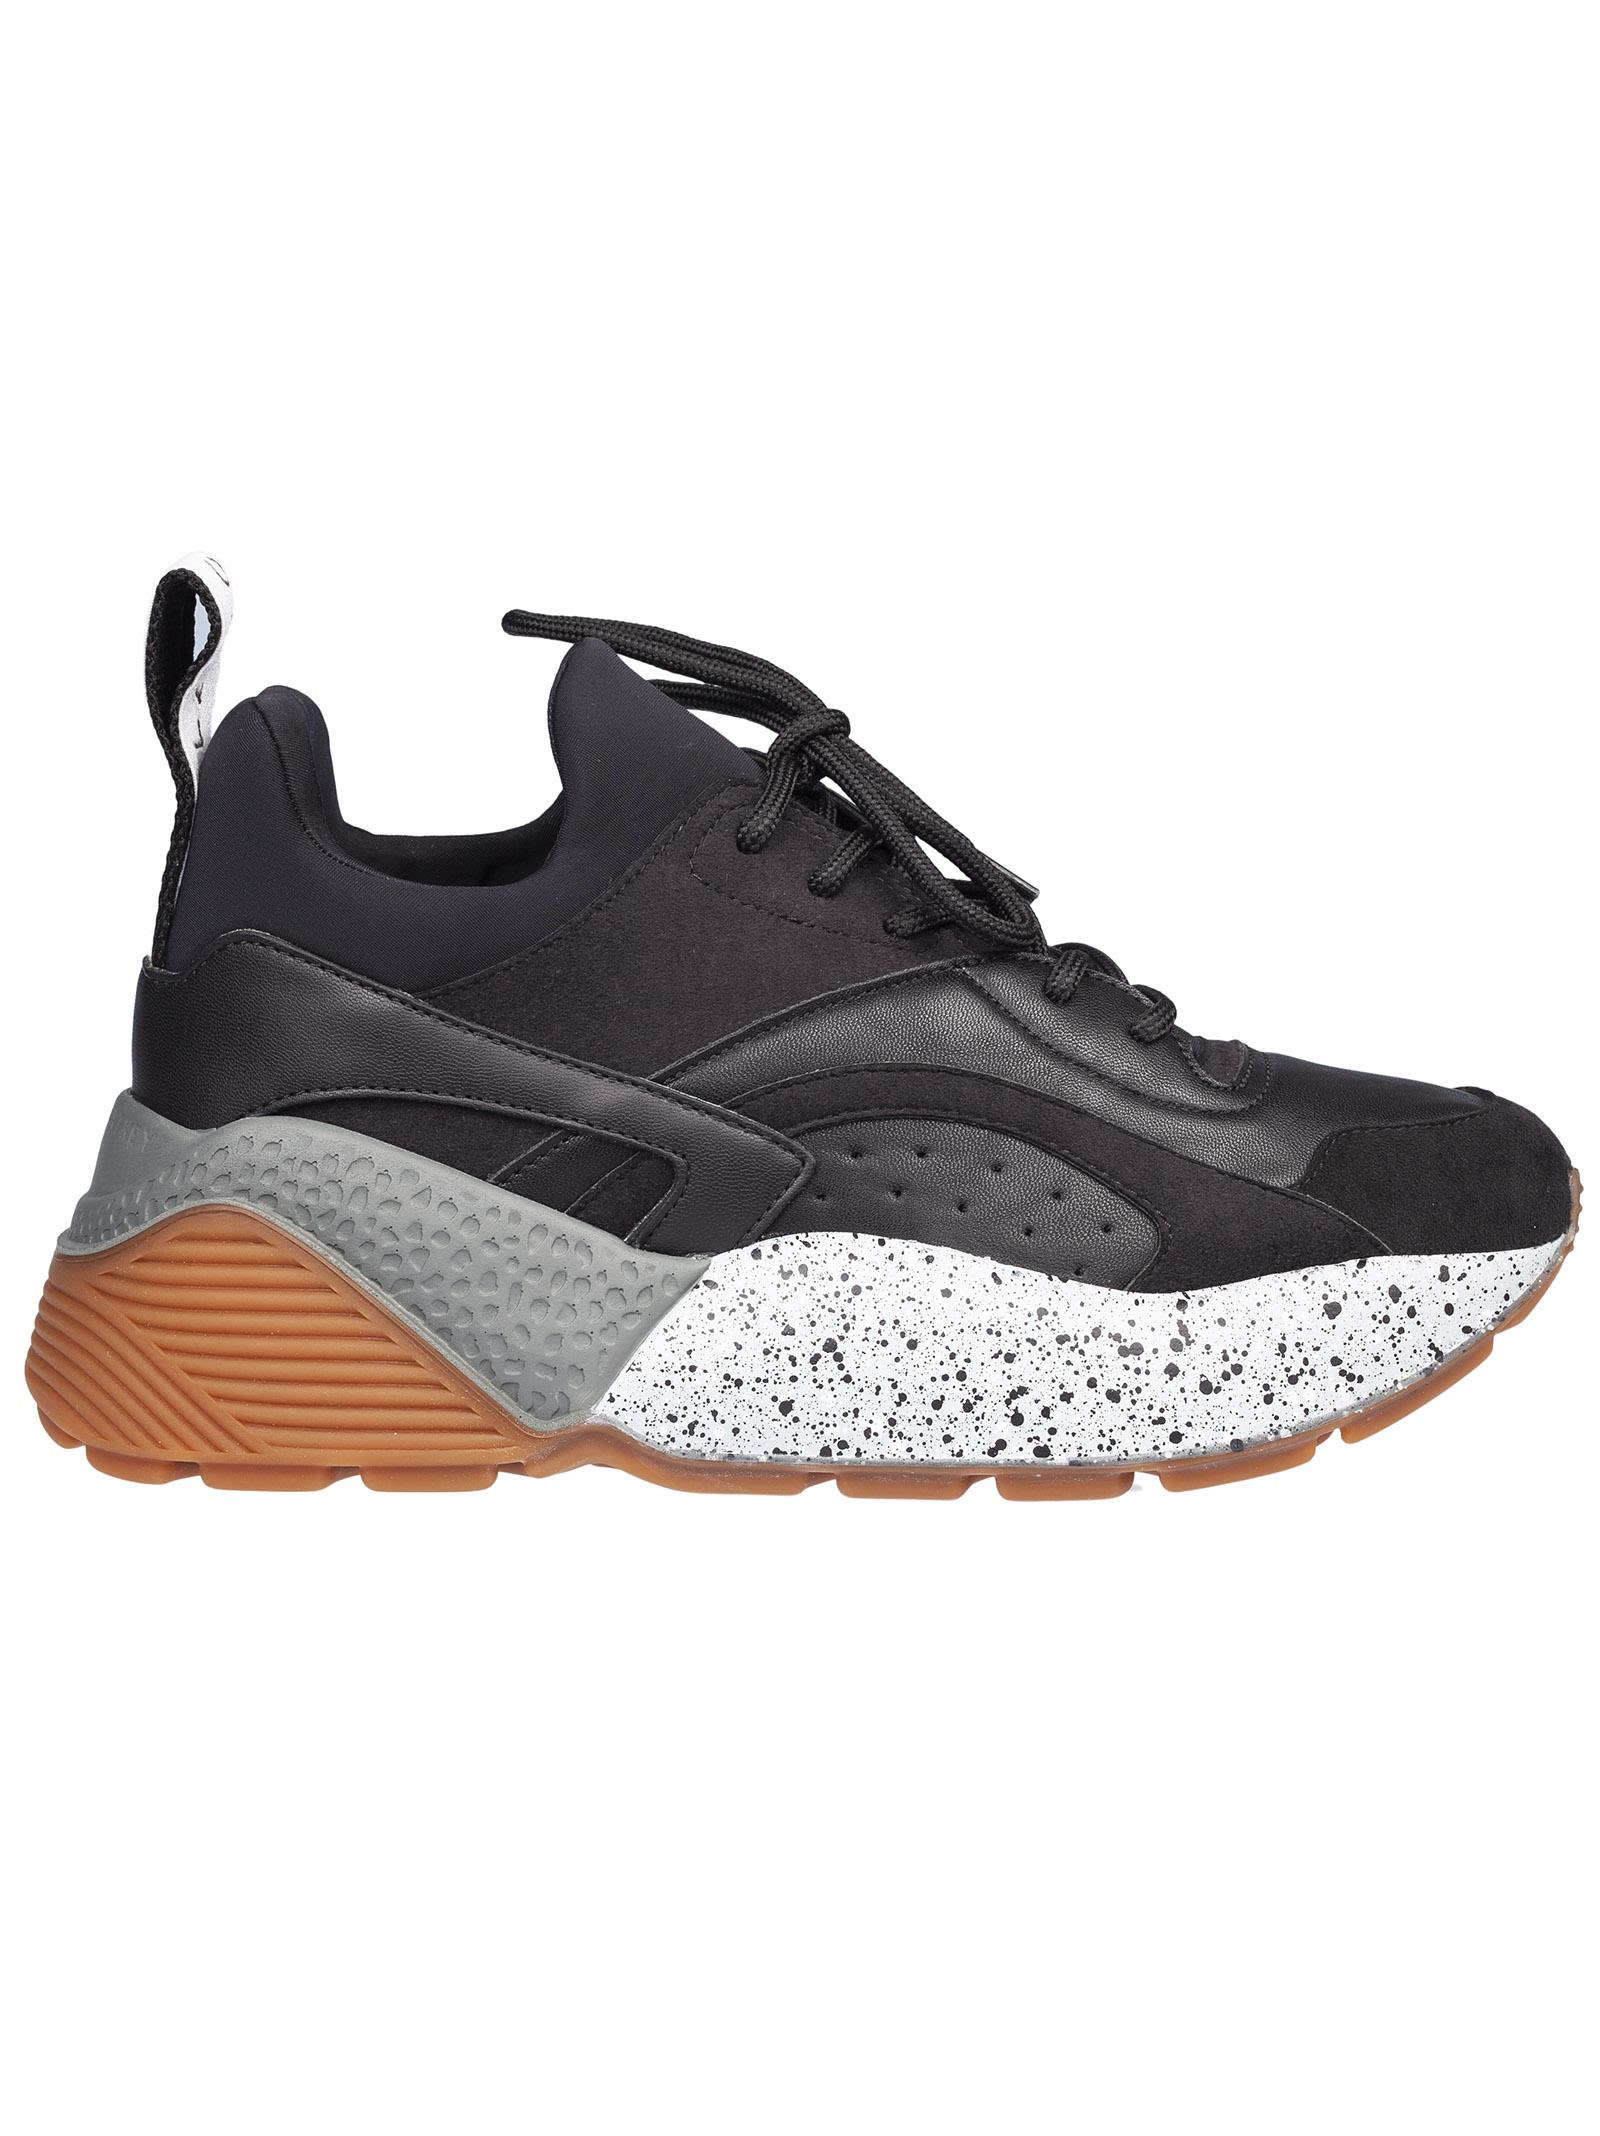 Stella Mccartney Eclipse Lace-up Sneakers